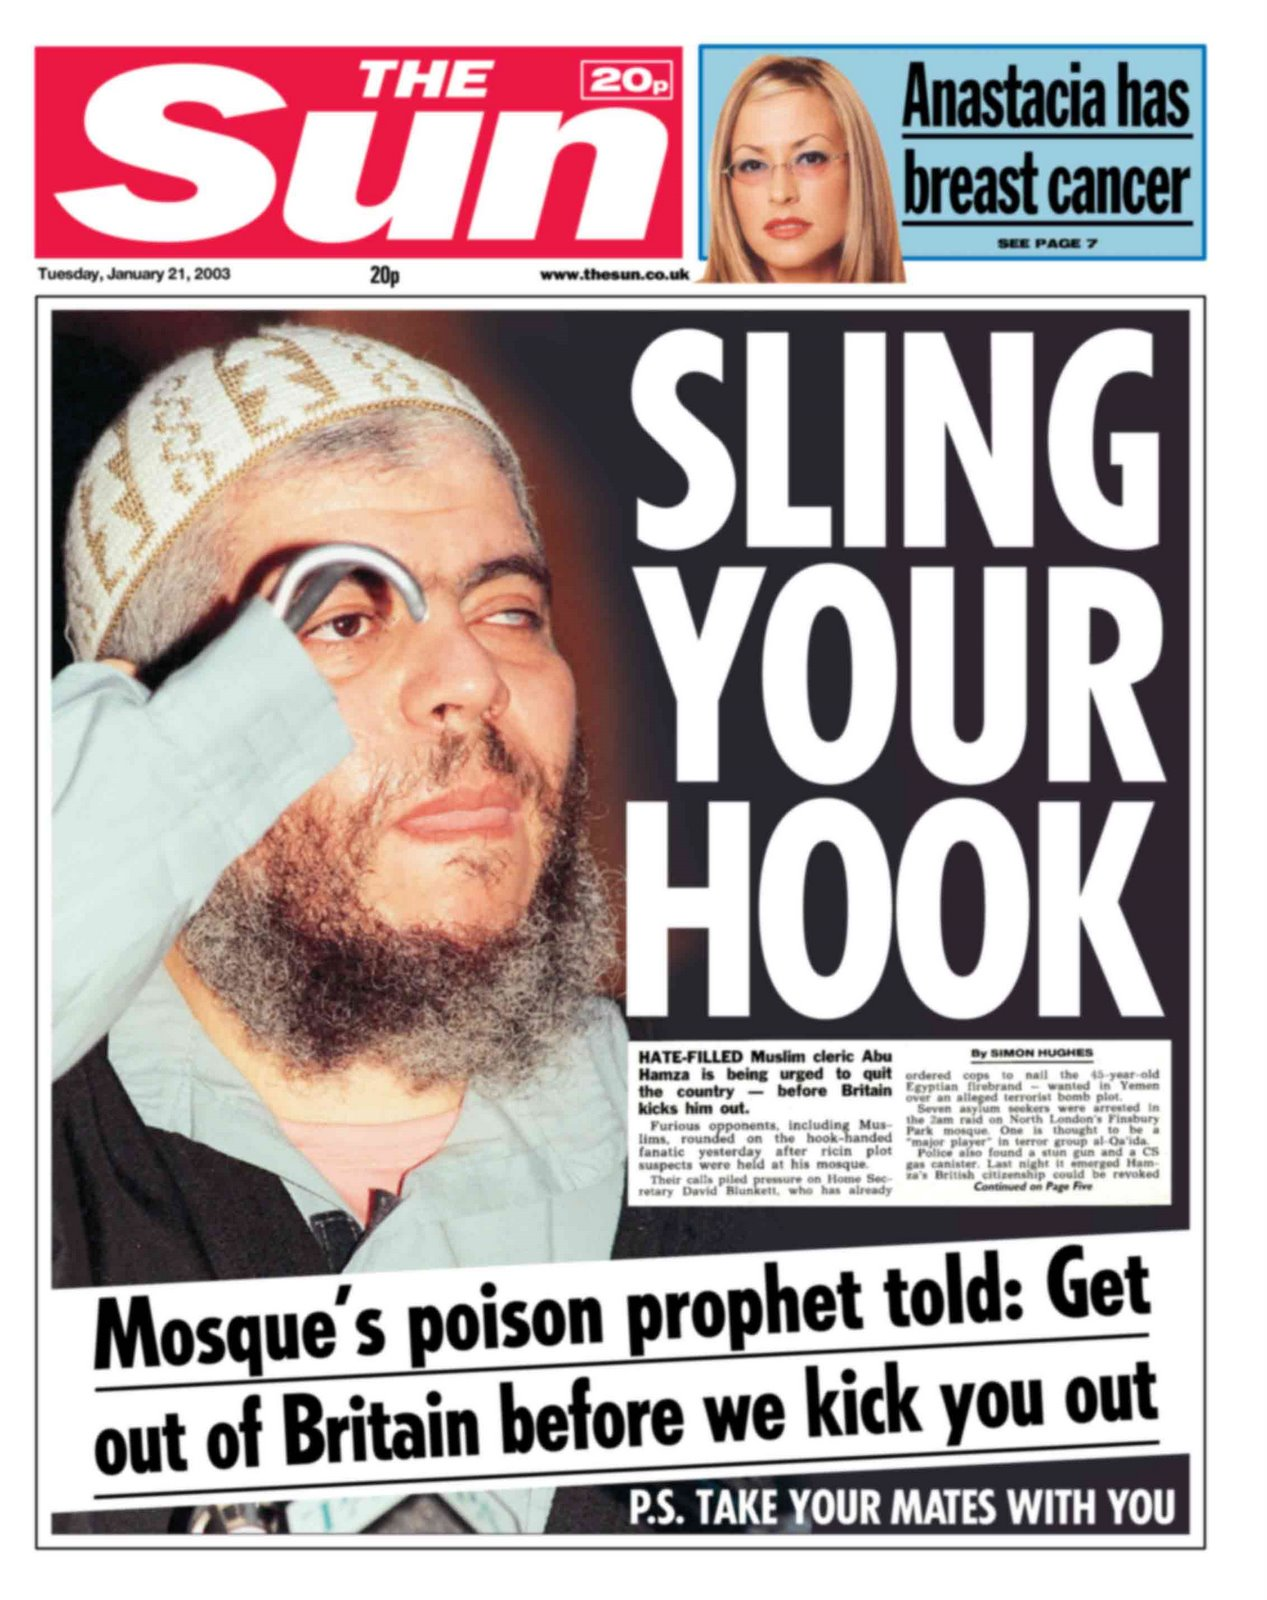 The Sun Splash Headline Abu Hamza al-Masri, Sling your hook. What copywriters can learn from tabloid writers